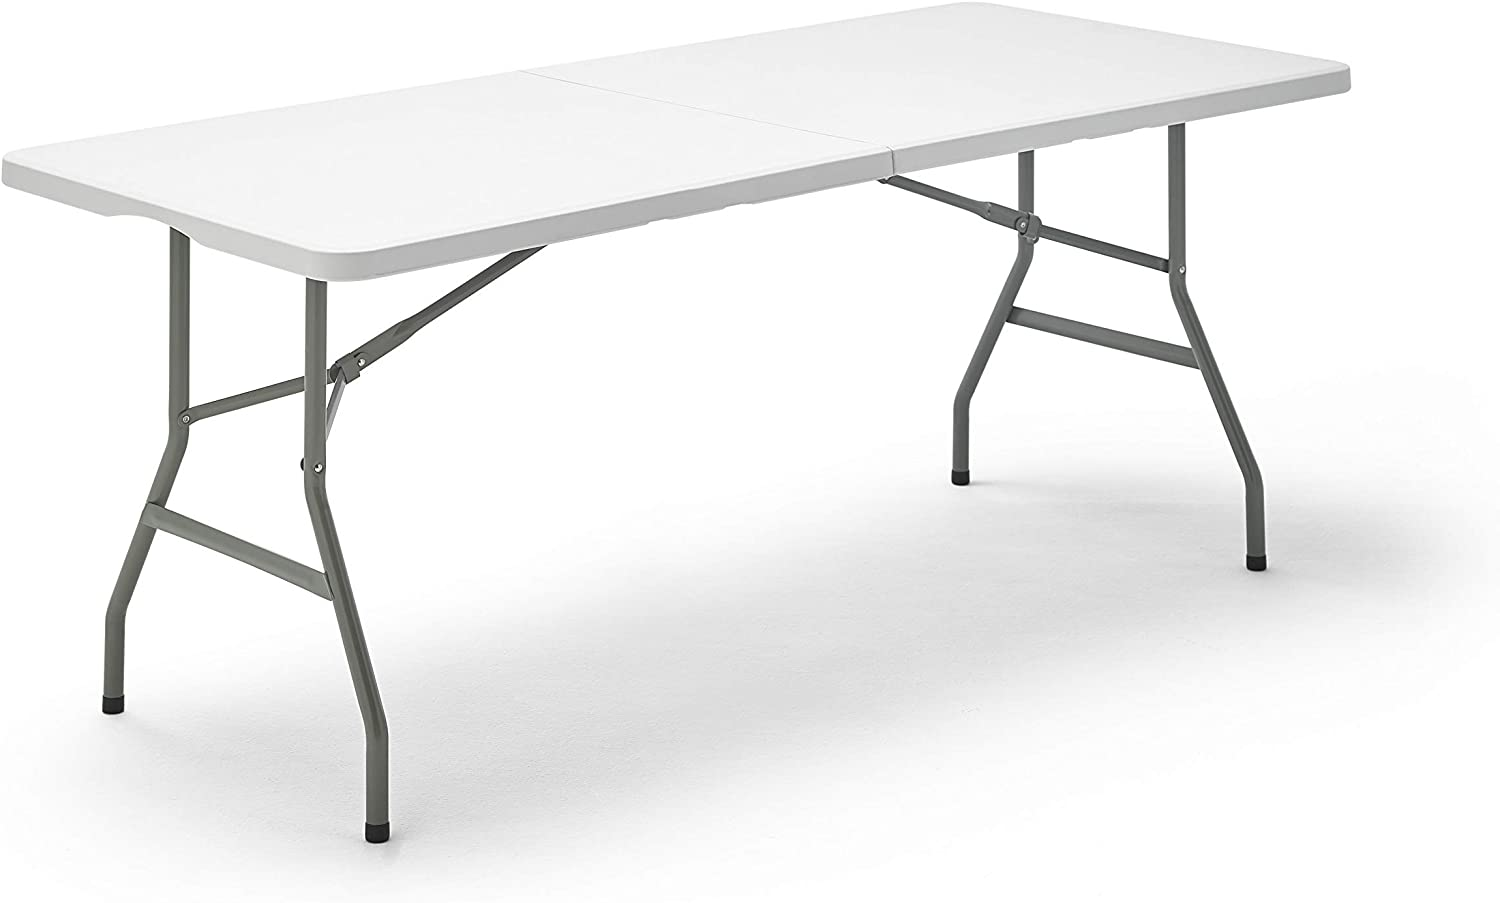 Mesa Plegable Rectangular, 180 x 74 x 74 cm, color blanco (Tenco  TG180)